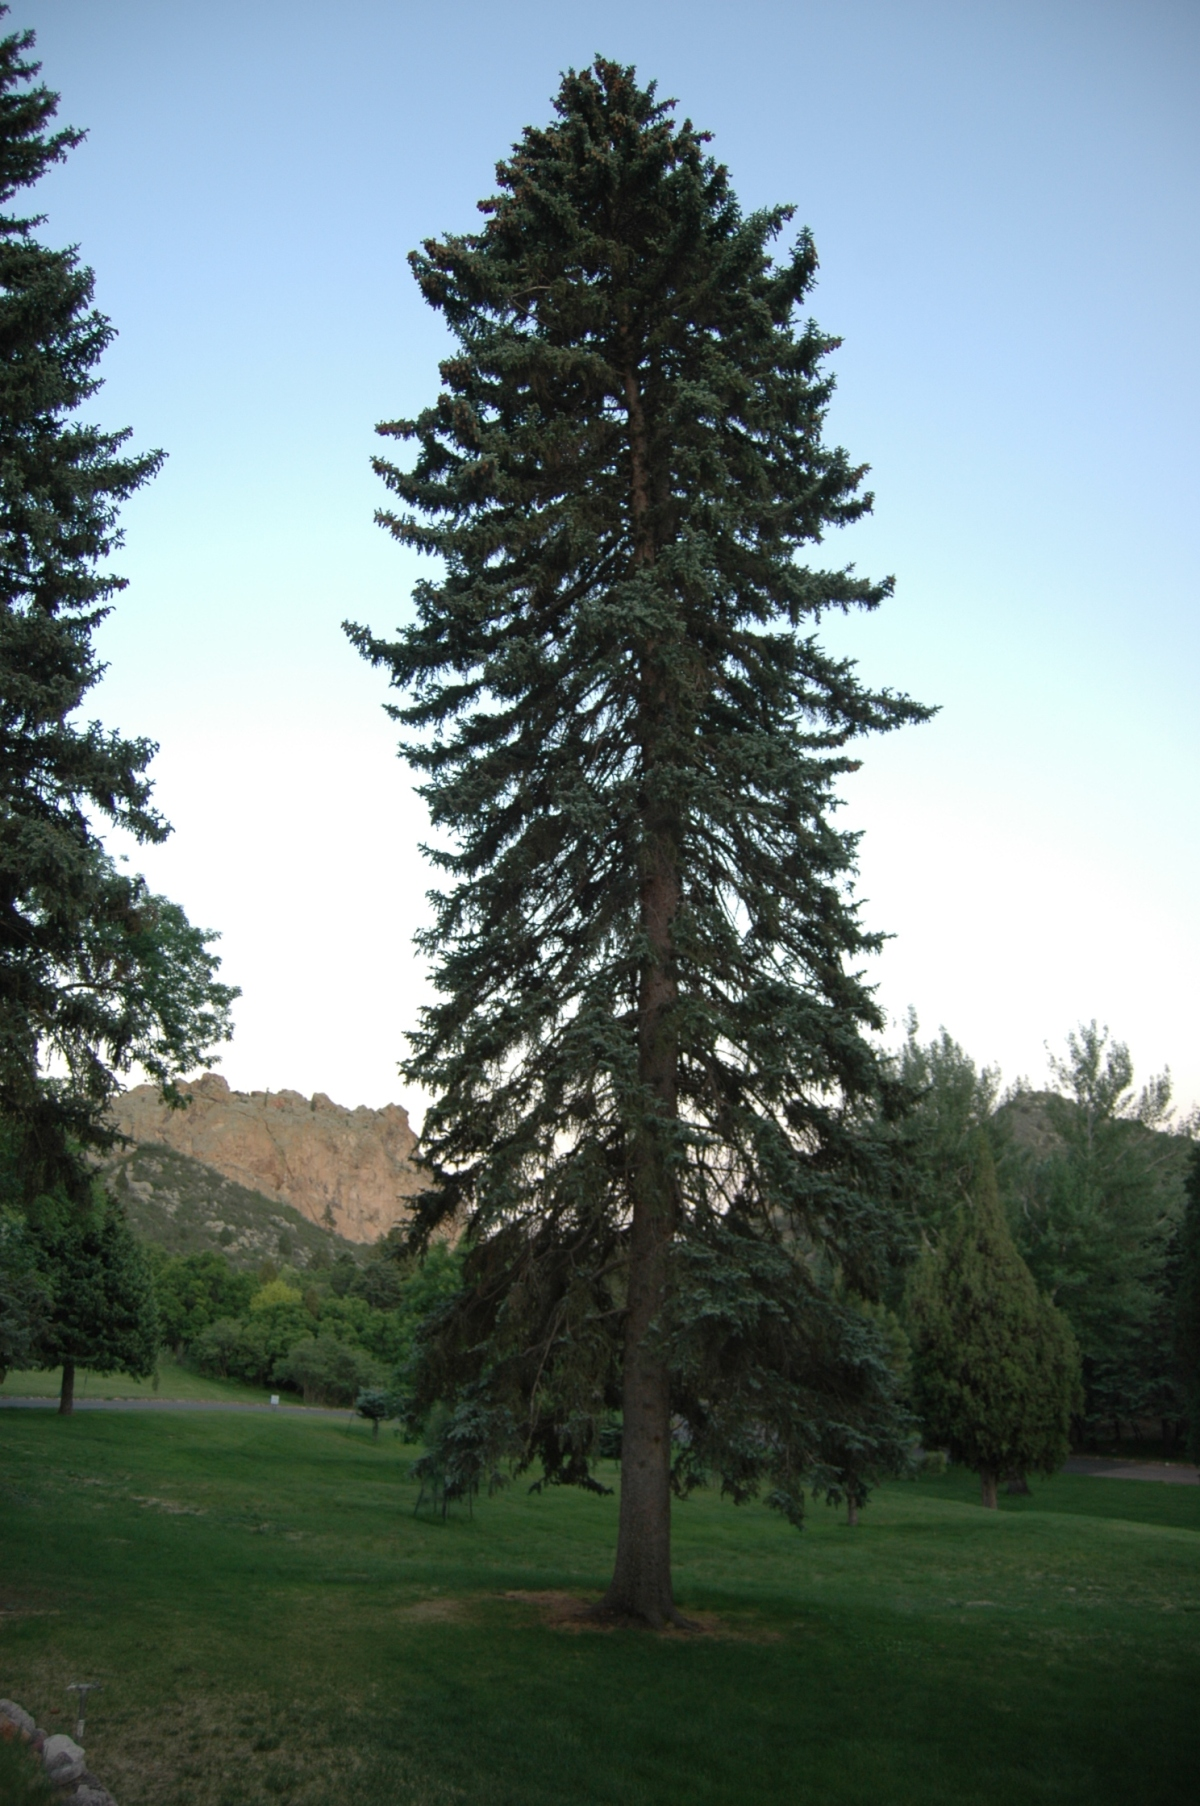 Evergreen tree - Glen Eyrie, Colorado Springs, CO